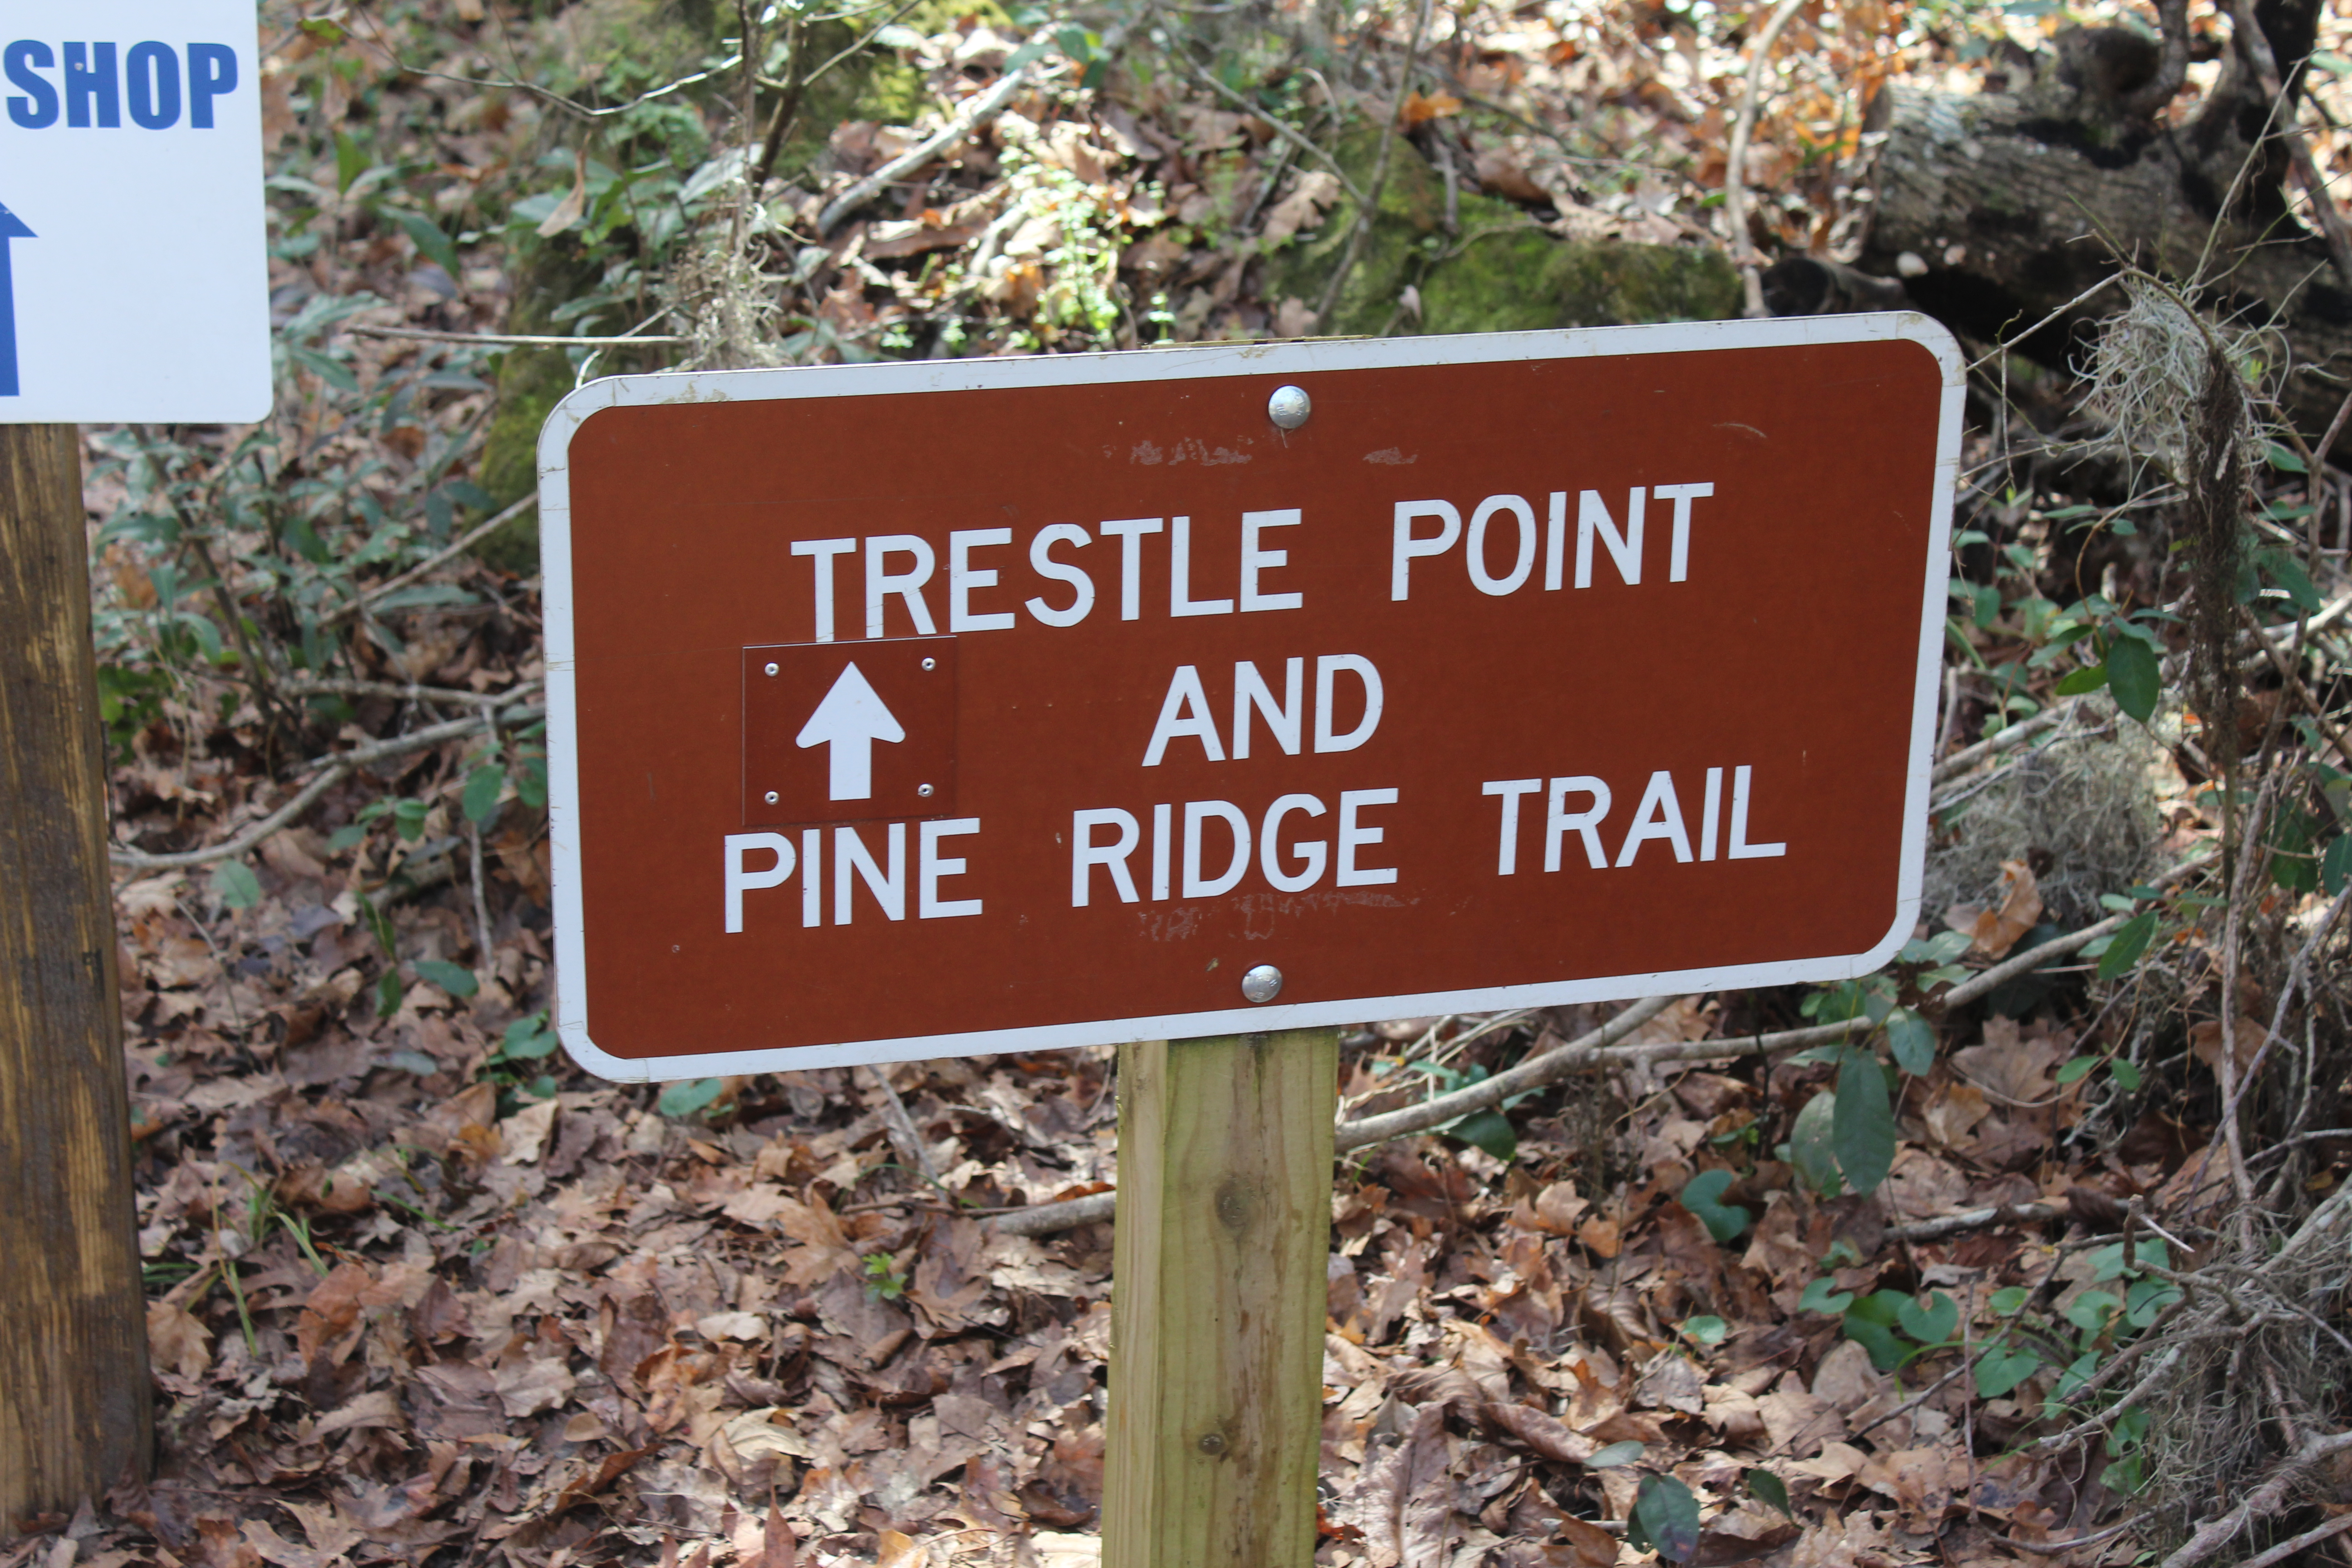 Trestle Point and Pine Ridge Trail